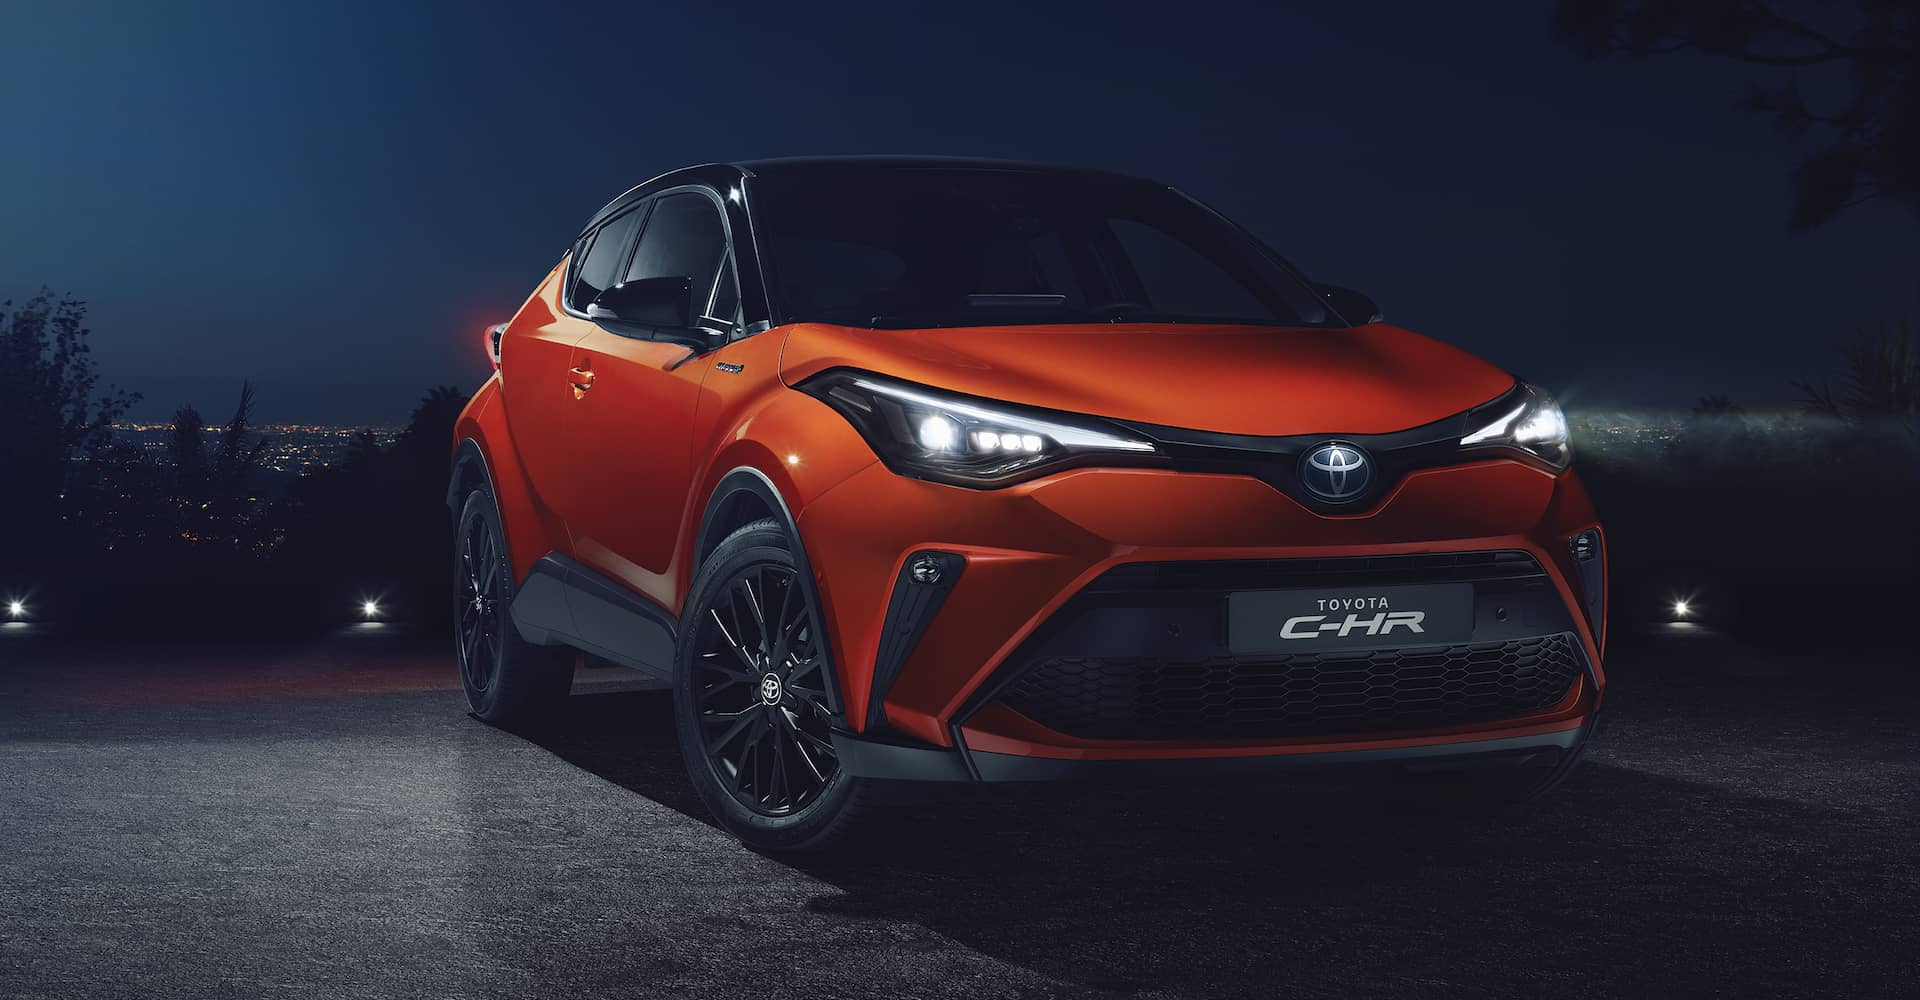 2020 Toyota C-HR | The Car Expert